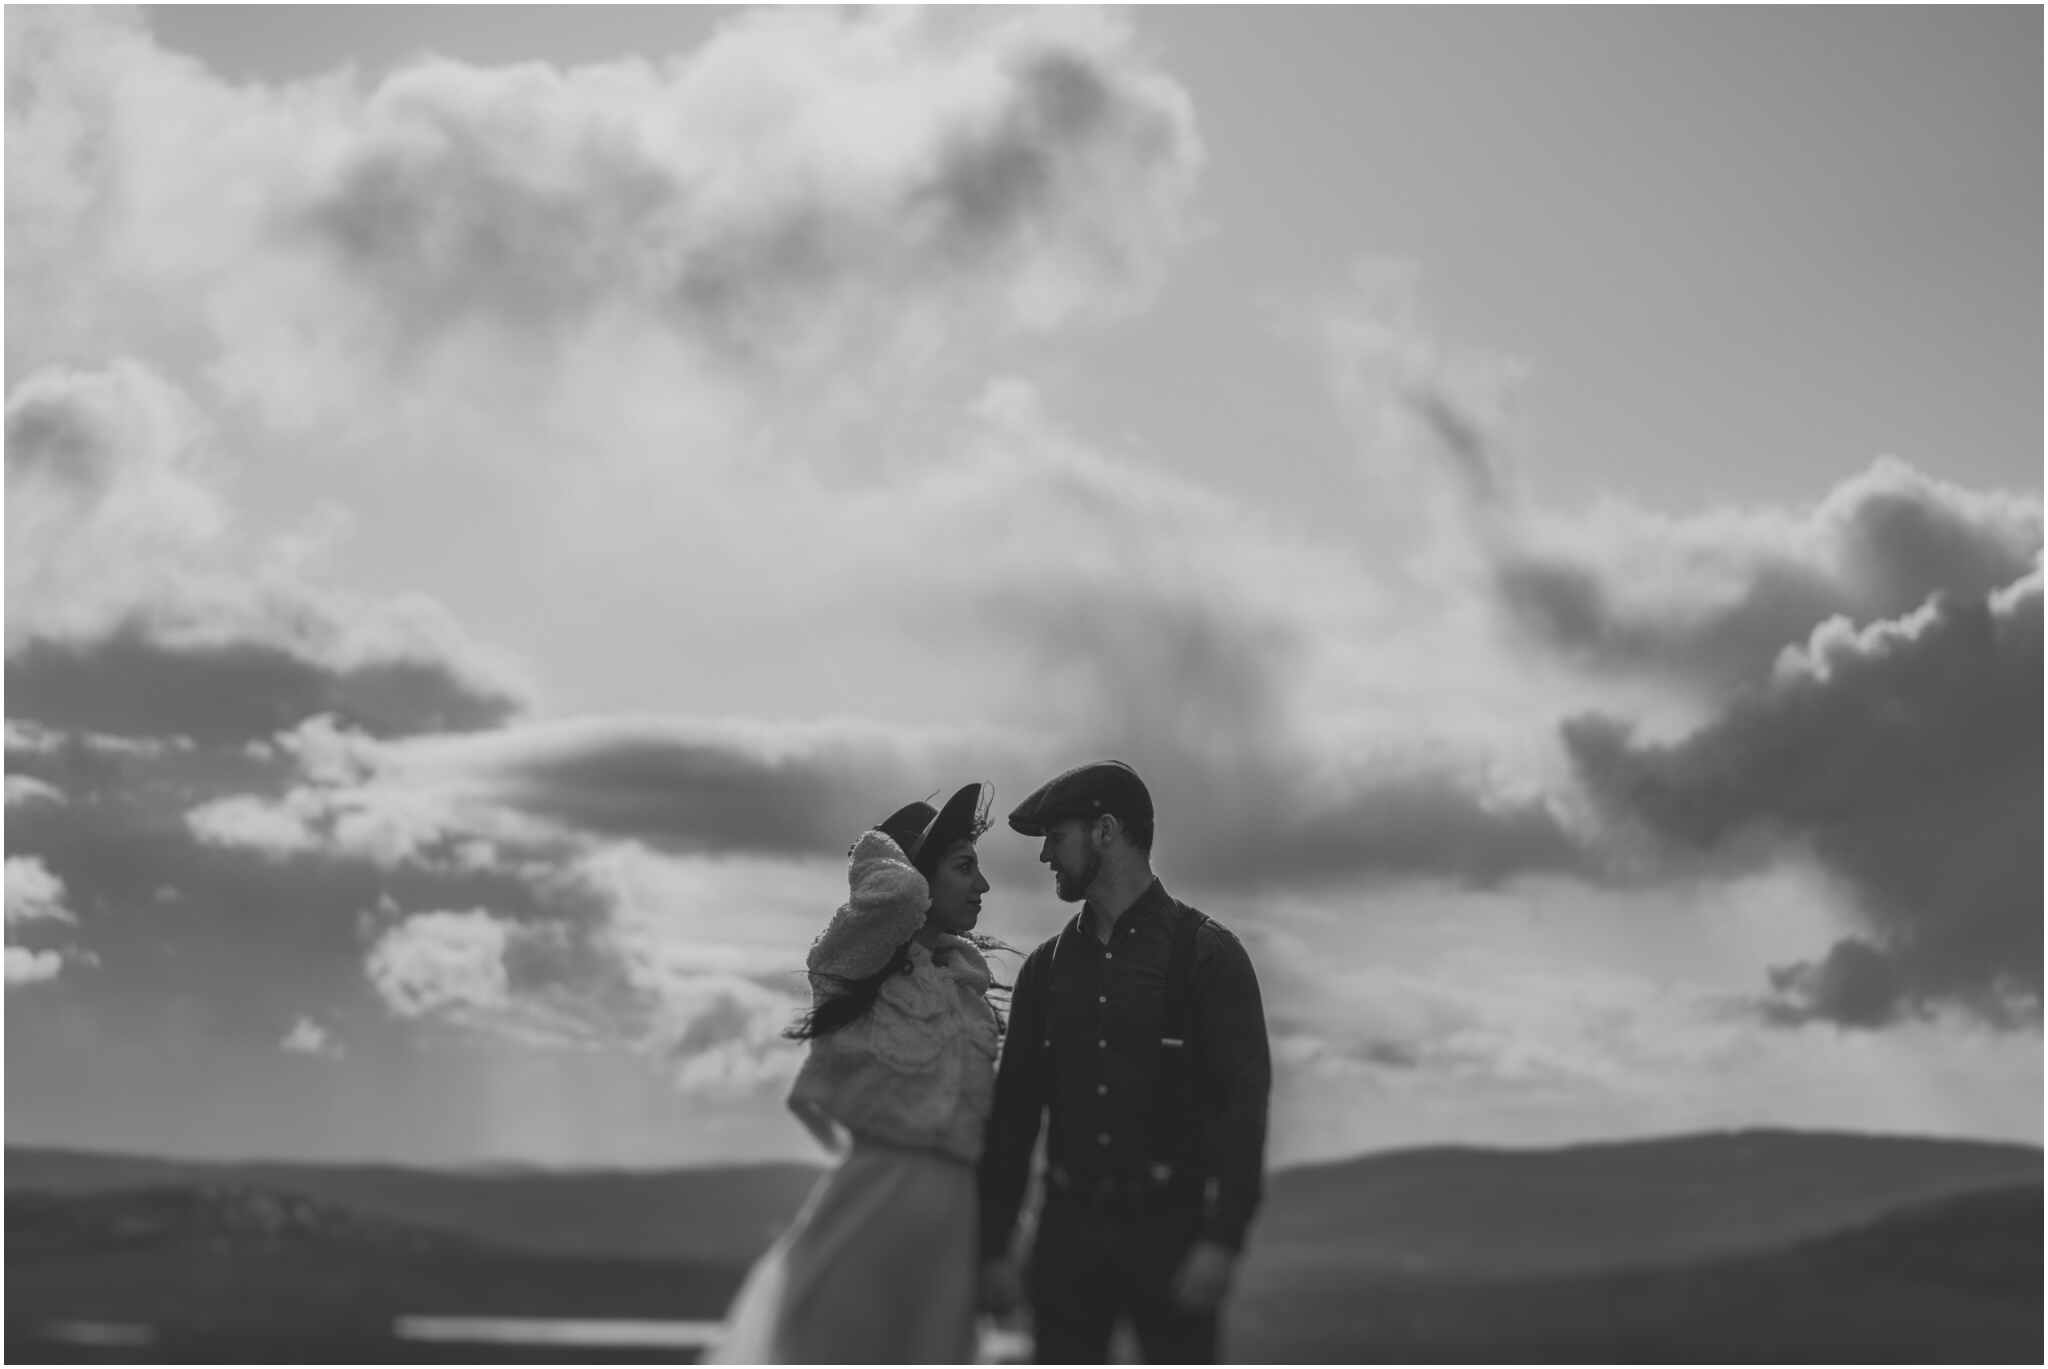 Rachel + David - Hiking Elopement in Muckish Mountain and Poisoned Glen, Donegal 7